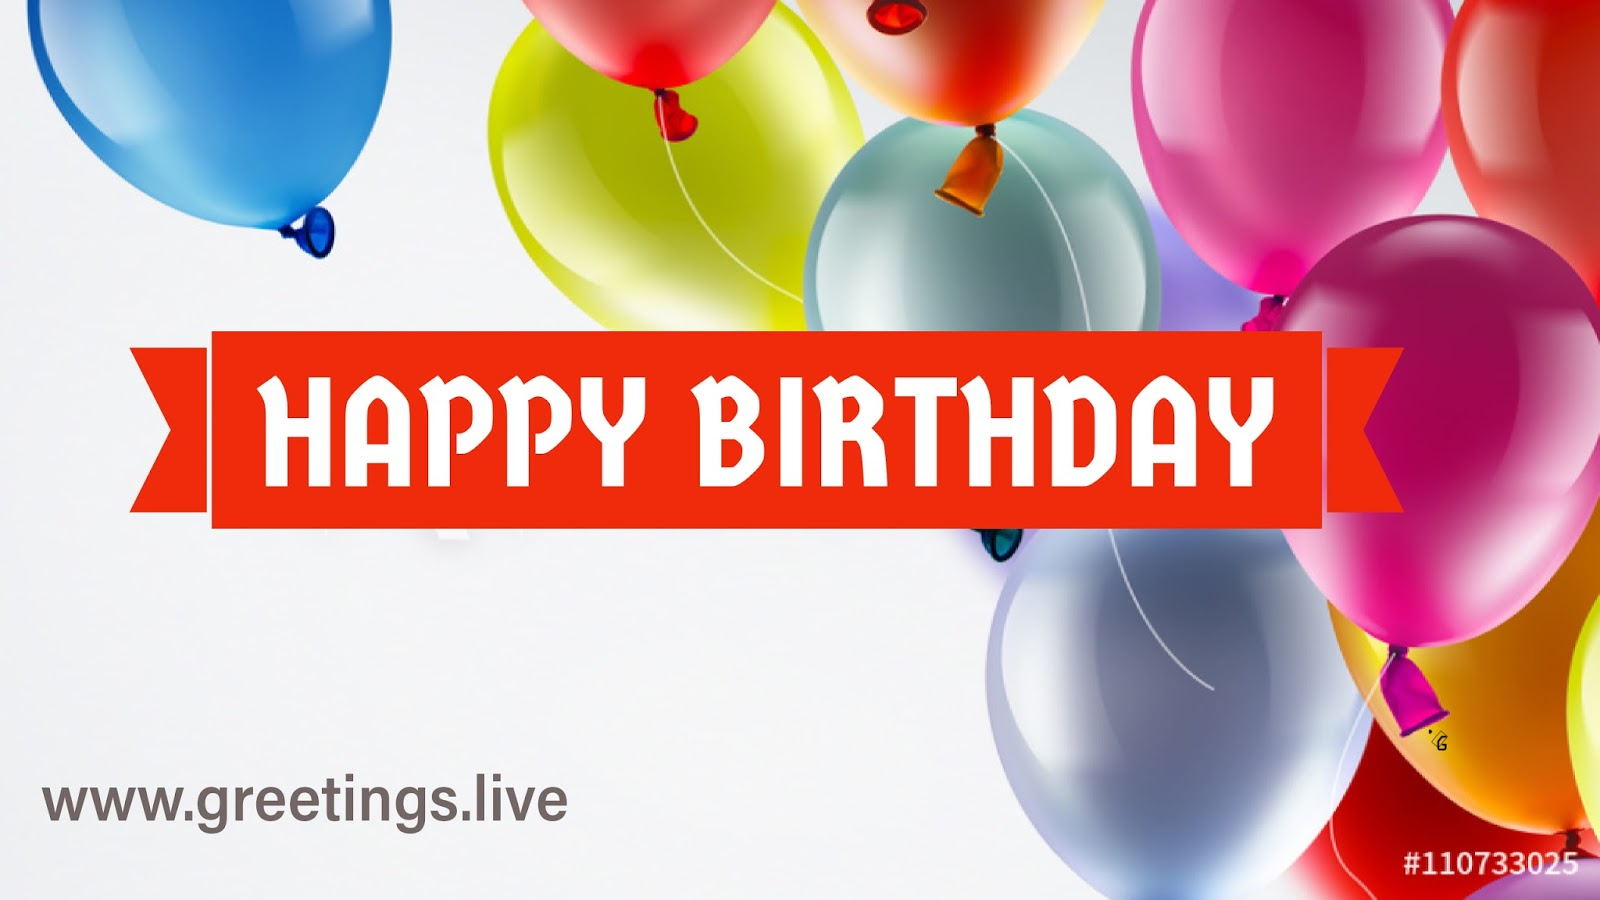 birthday wishes in hd images ; Happy%252Bbirthday%252Bgreetings%252Bballoons%252BHD%252BColourful